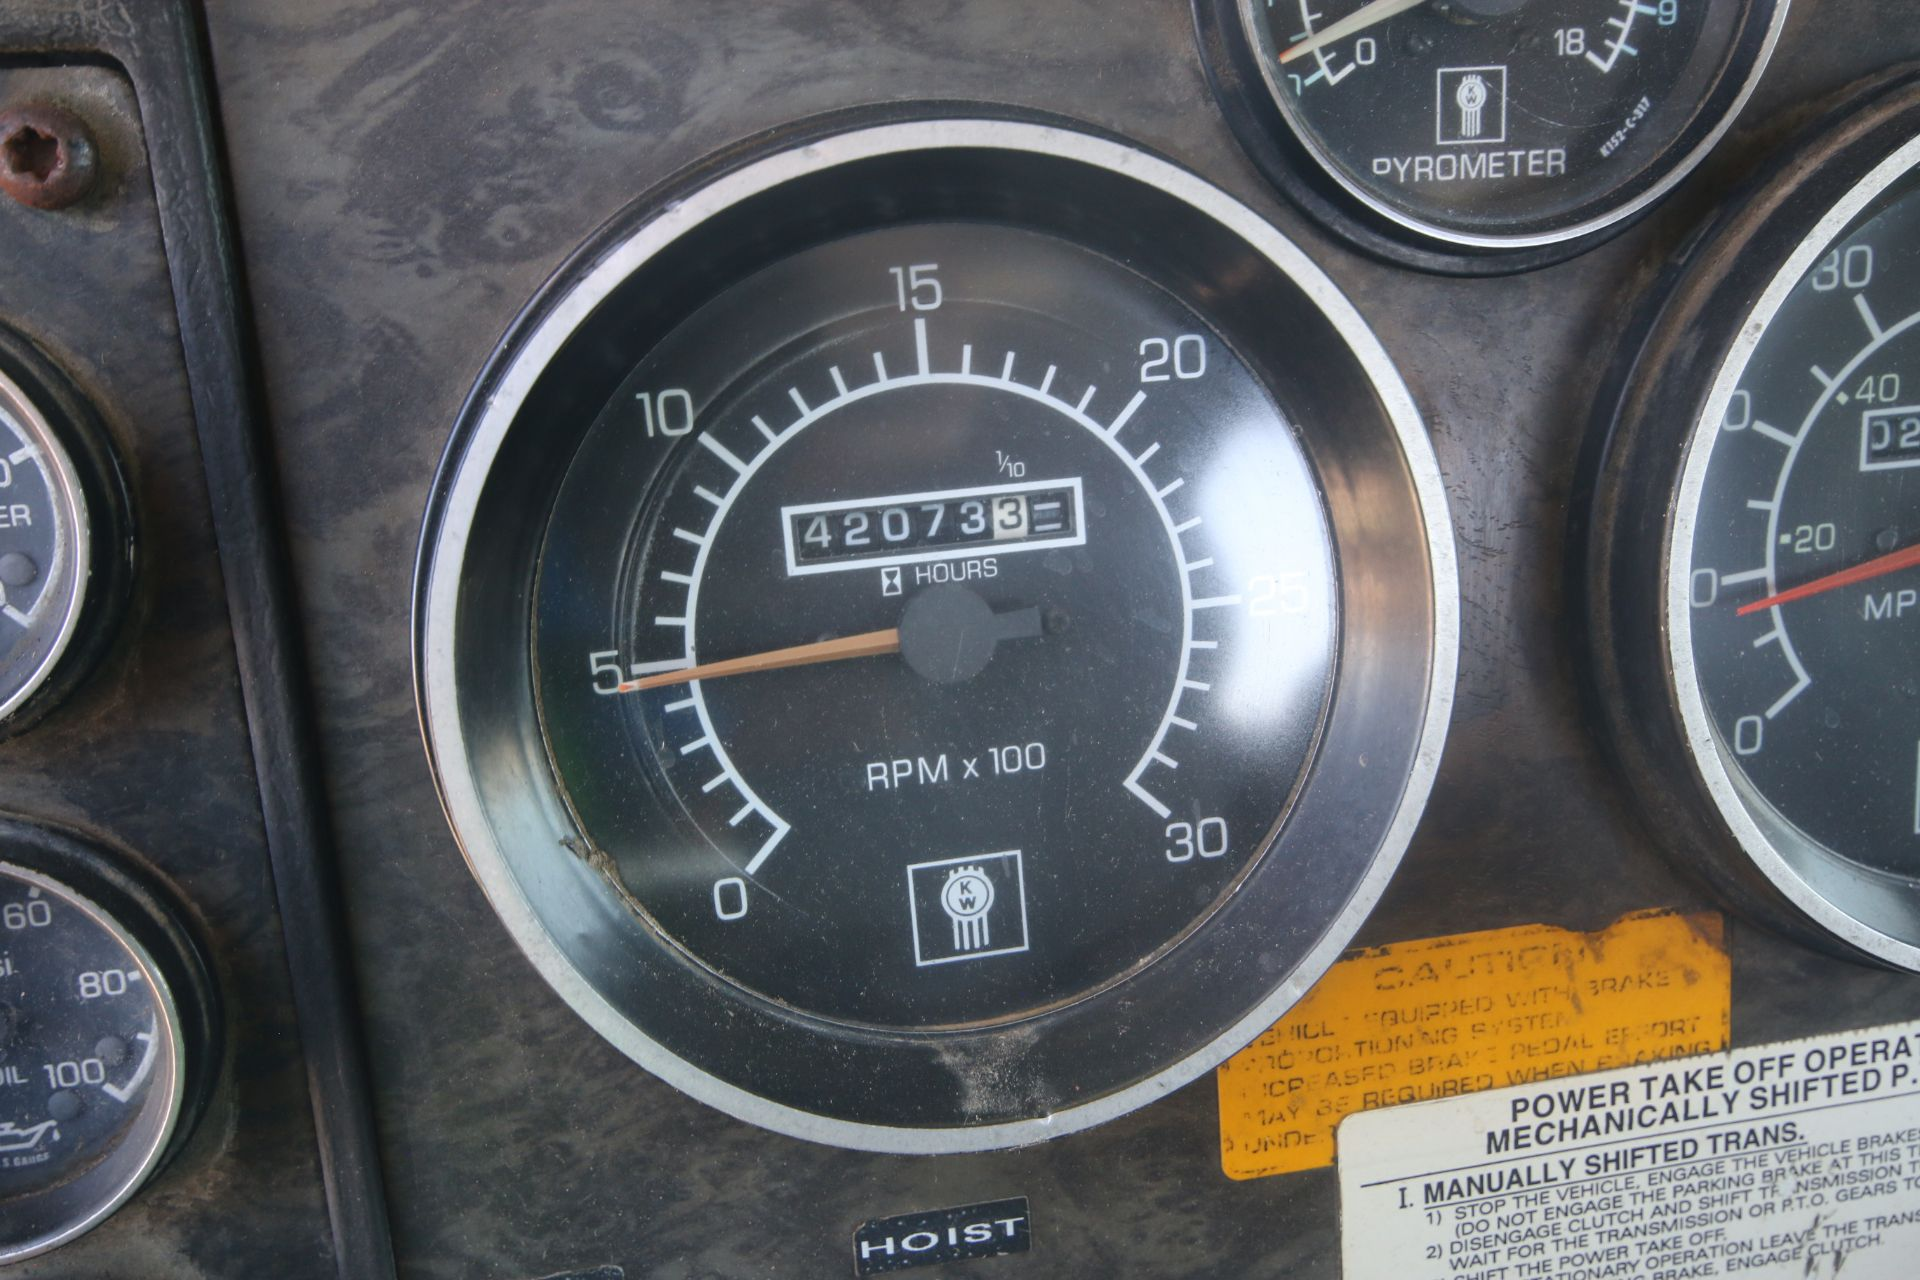 1996 Kenworth 3-Axle Roll-Off Straight Truck, VIN #: 1XKDDB9XOTS687107, with 24,722 Miles, License - Image 16 of 30